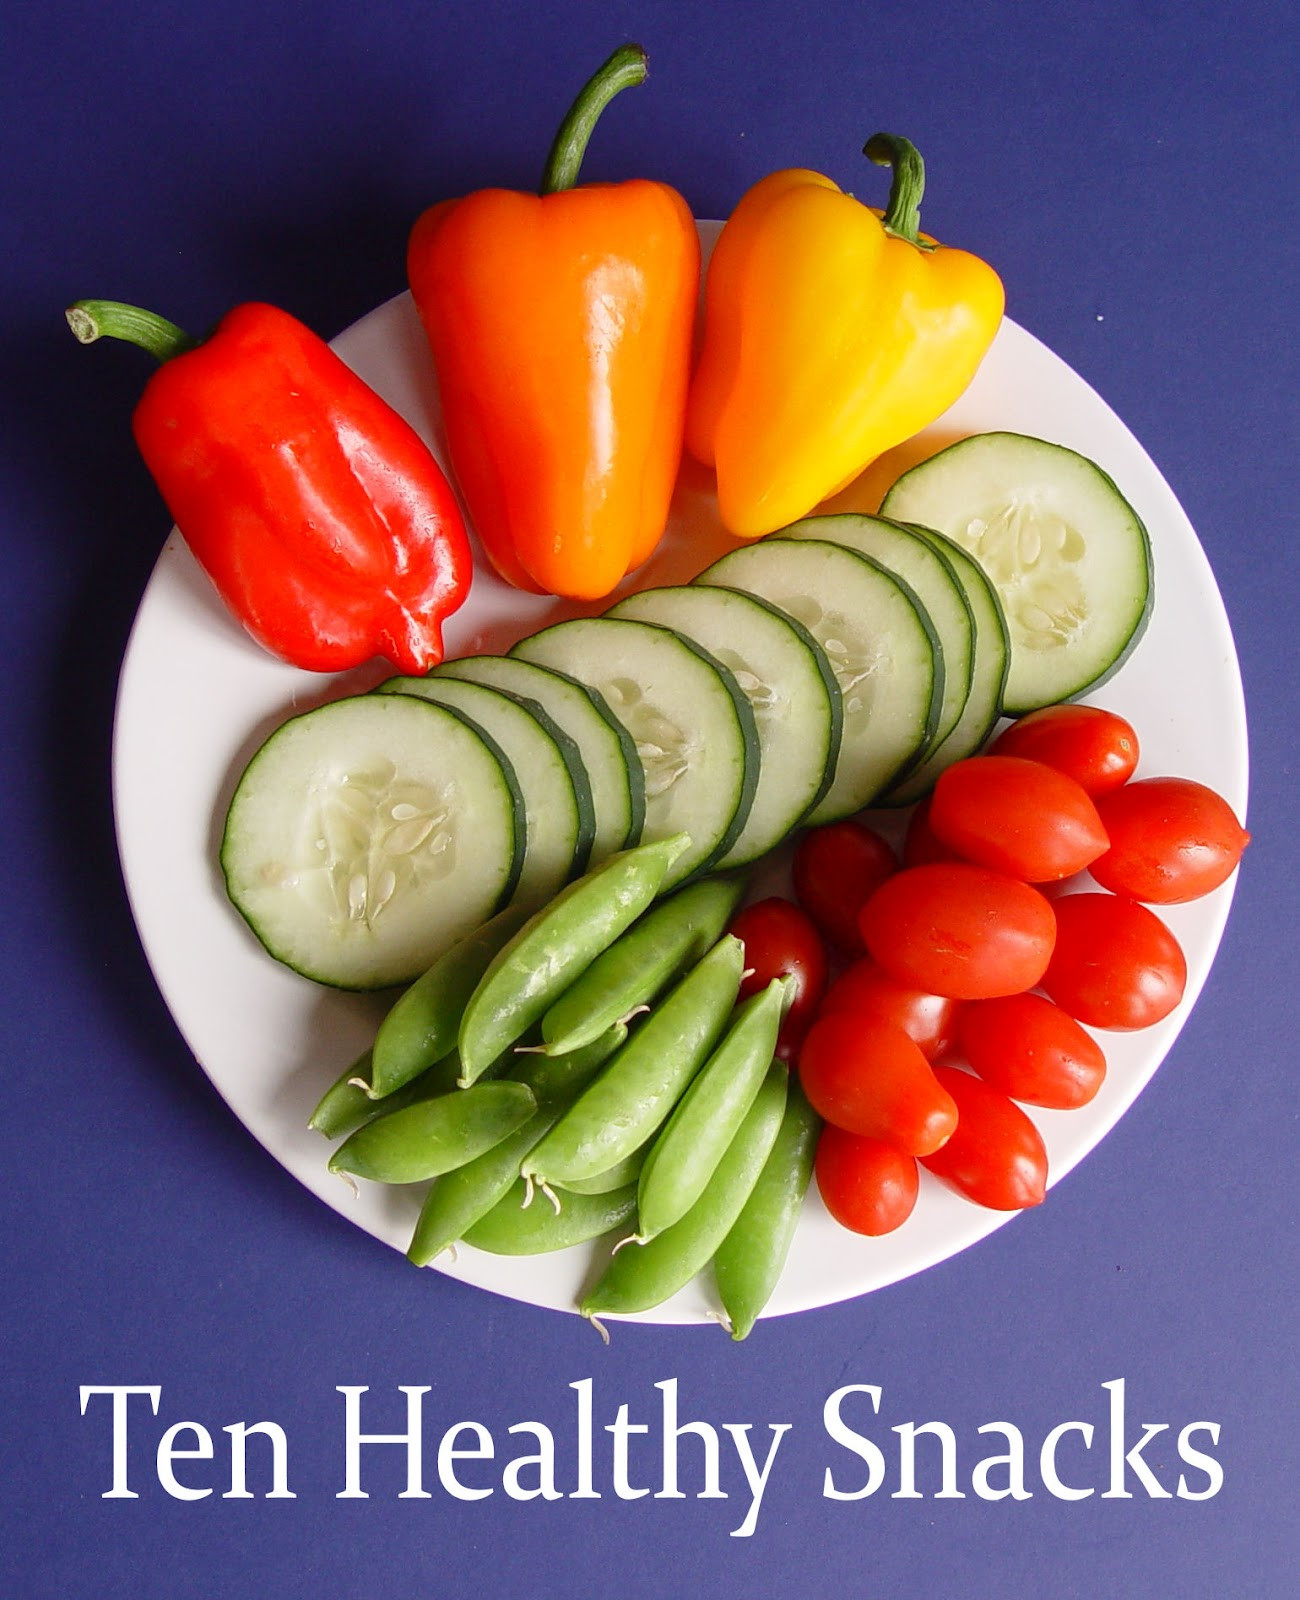 Snacks That Are Healthy  Ten Healthy Snacks with Printable Page